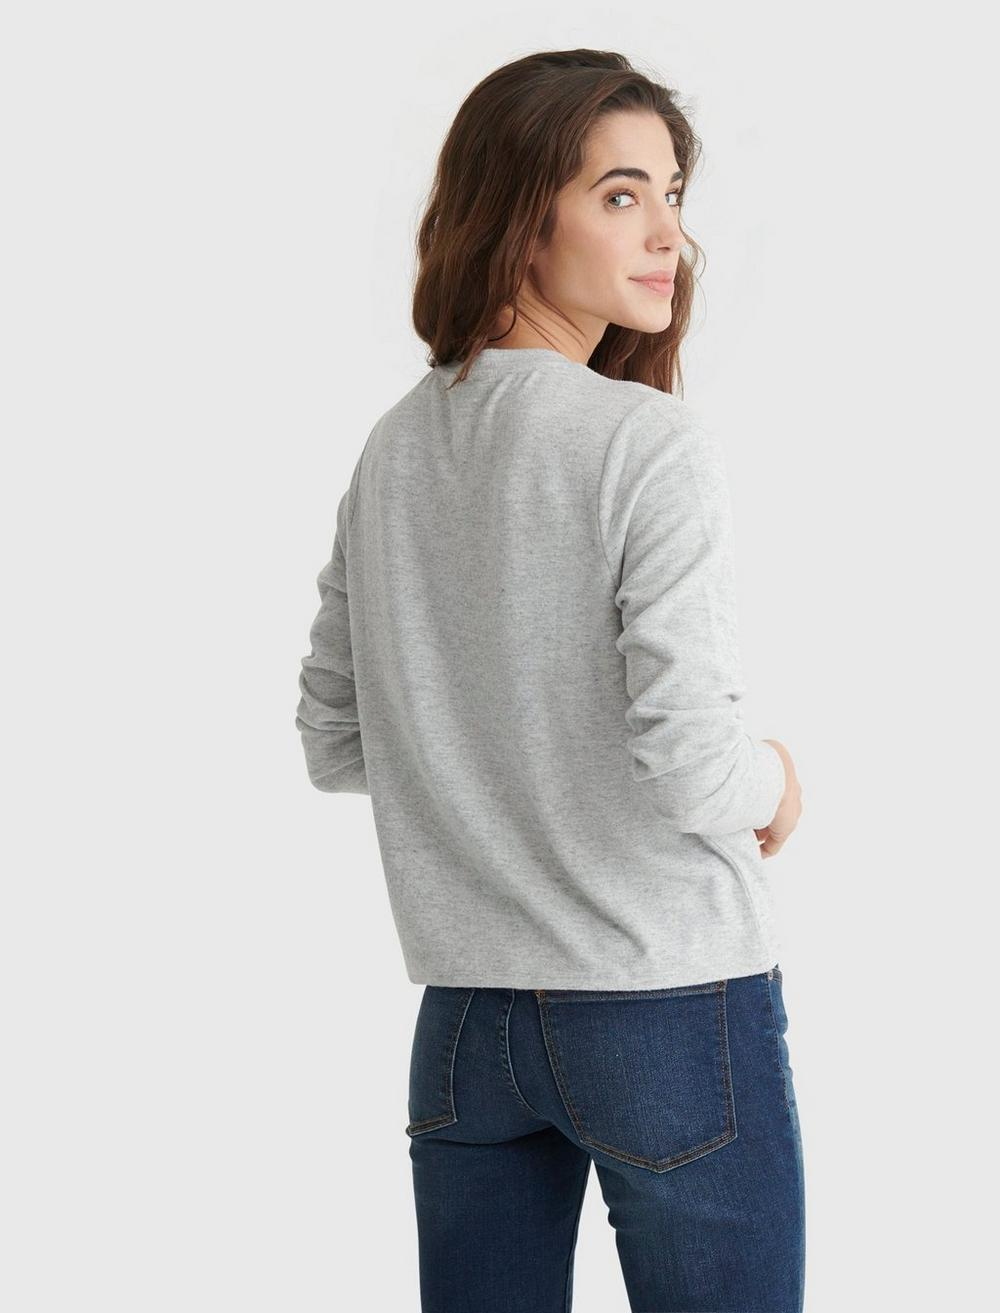 CLOUD JERSEY LONG SLEEVE BUTTON-UP TEE, image 5